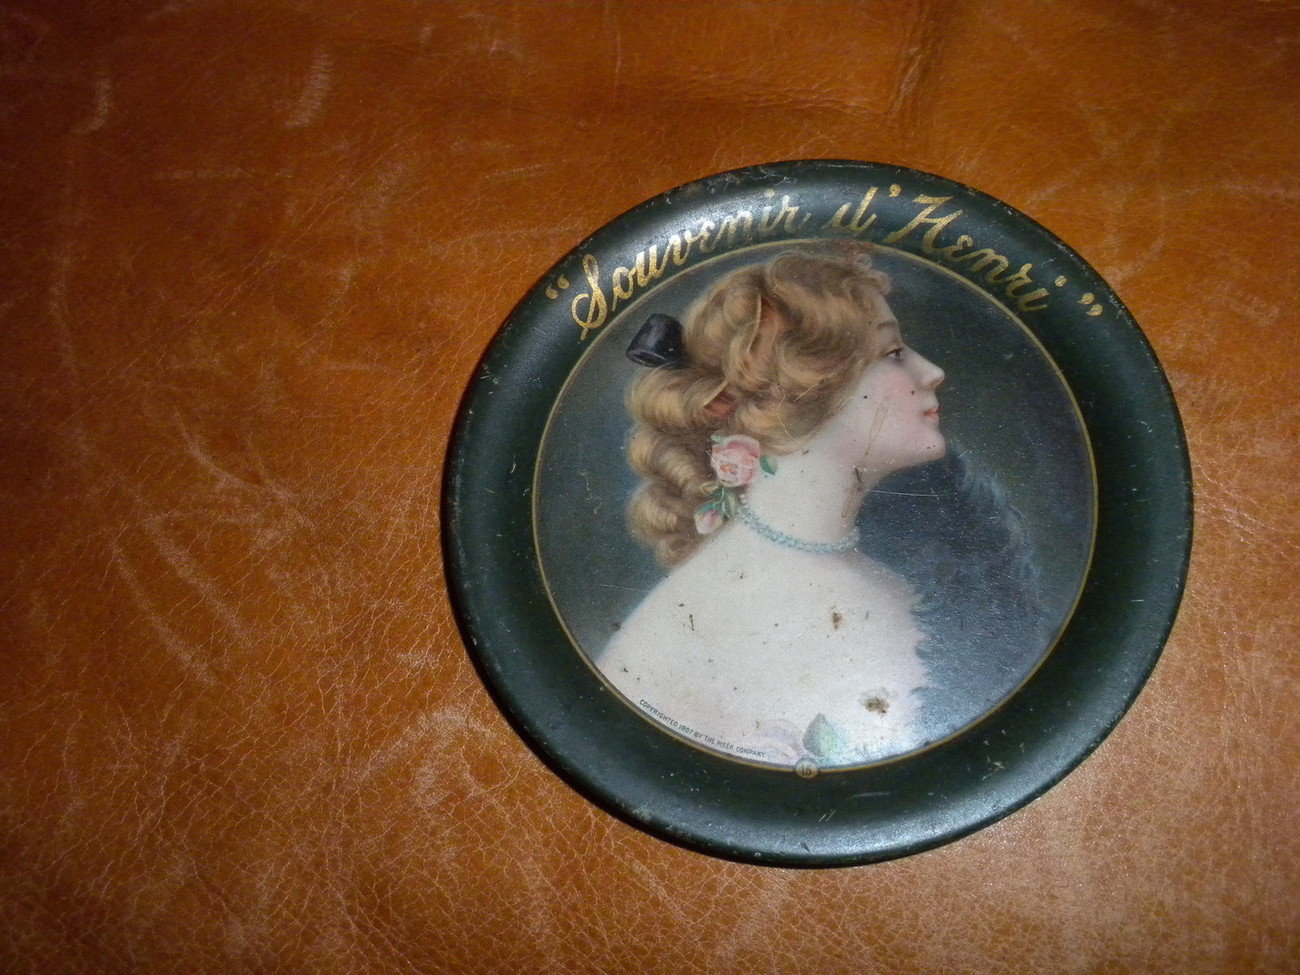 original Souvenir il Henri FrenchTip Tray 1907 Copyrighted Meek Co ,  VG+